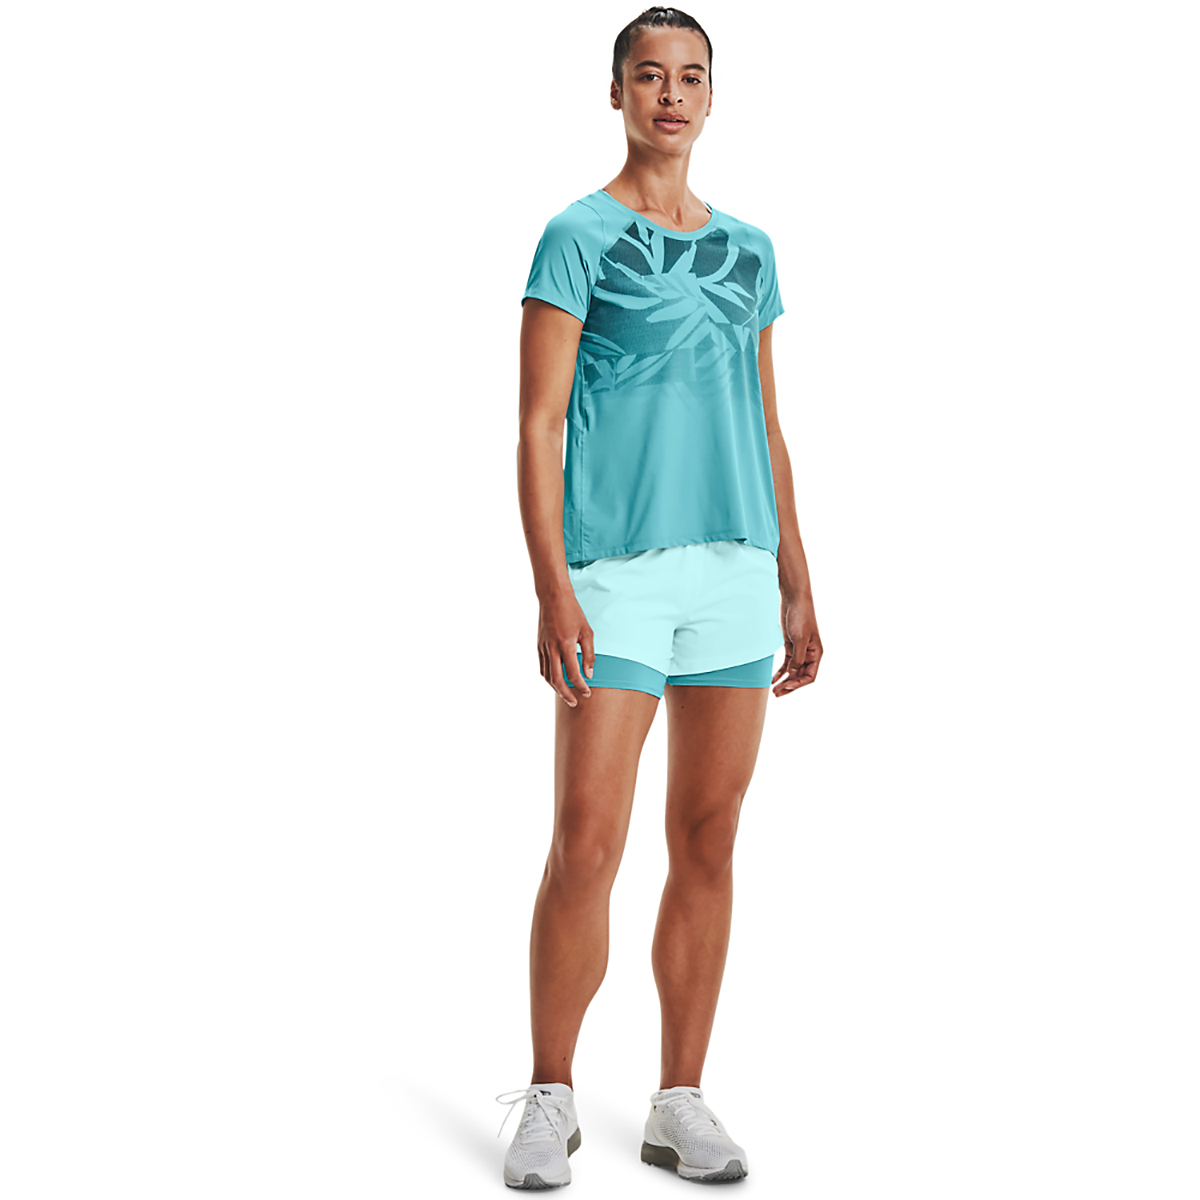 Women's Under Armour Isochill Run 2 in 1 Short - Color: Breeze Cosmos - Size: XS, Breeze Cosmos, large, image 3